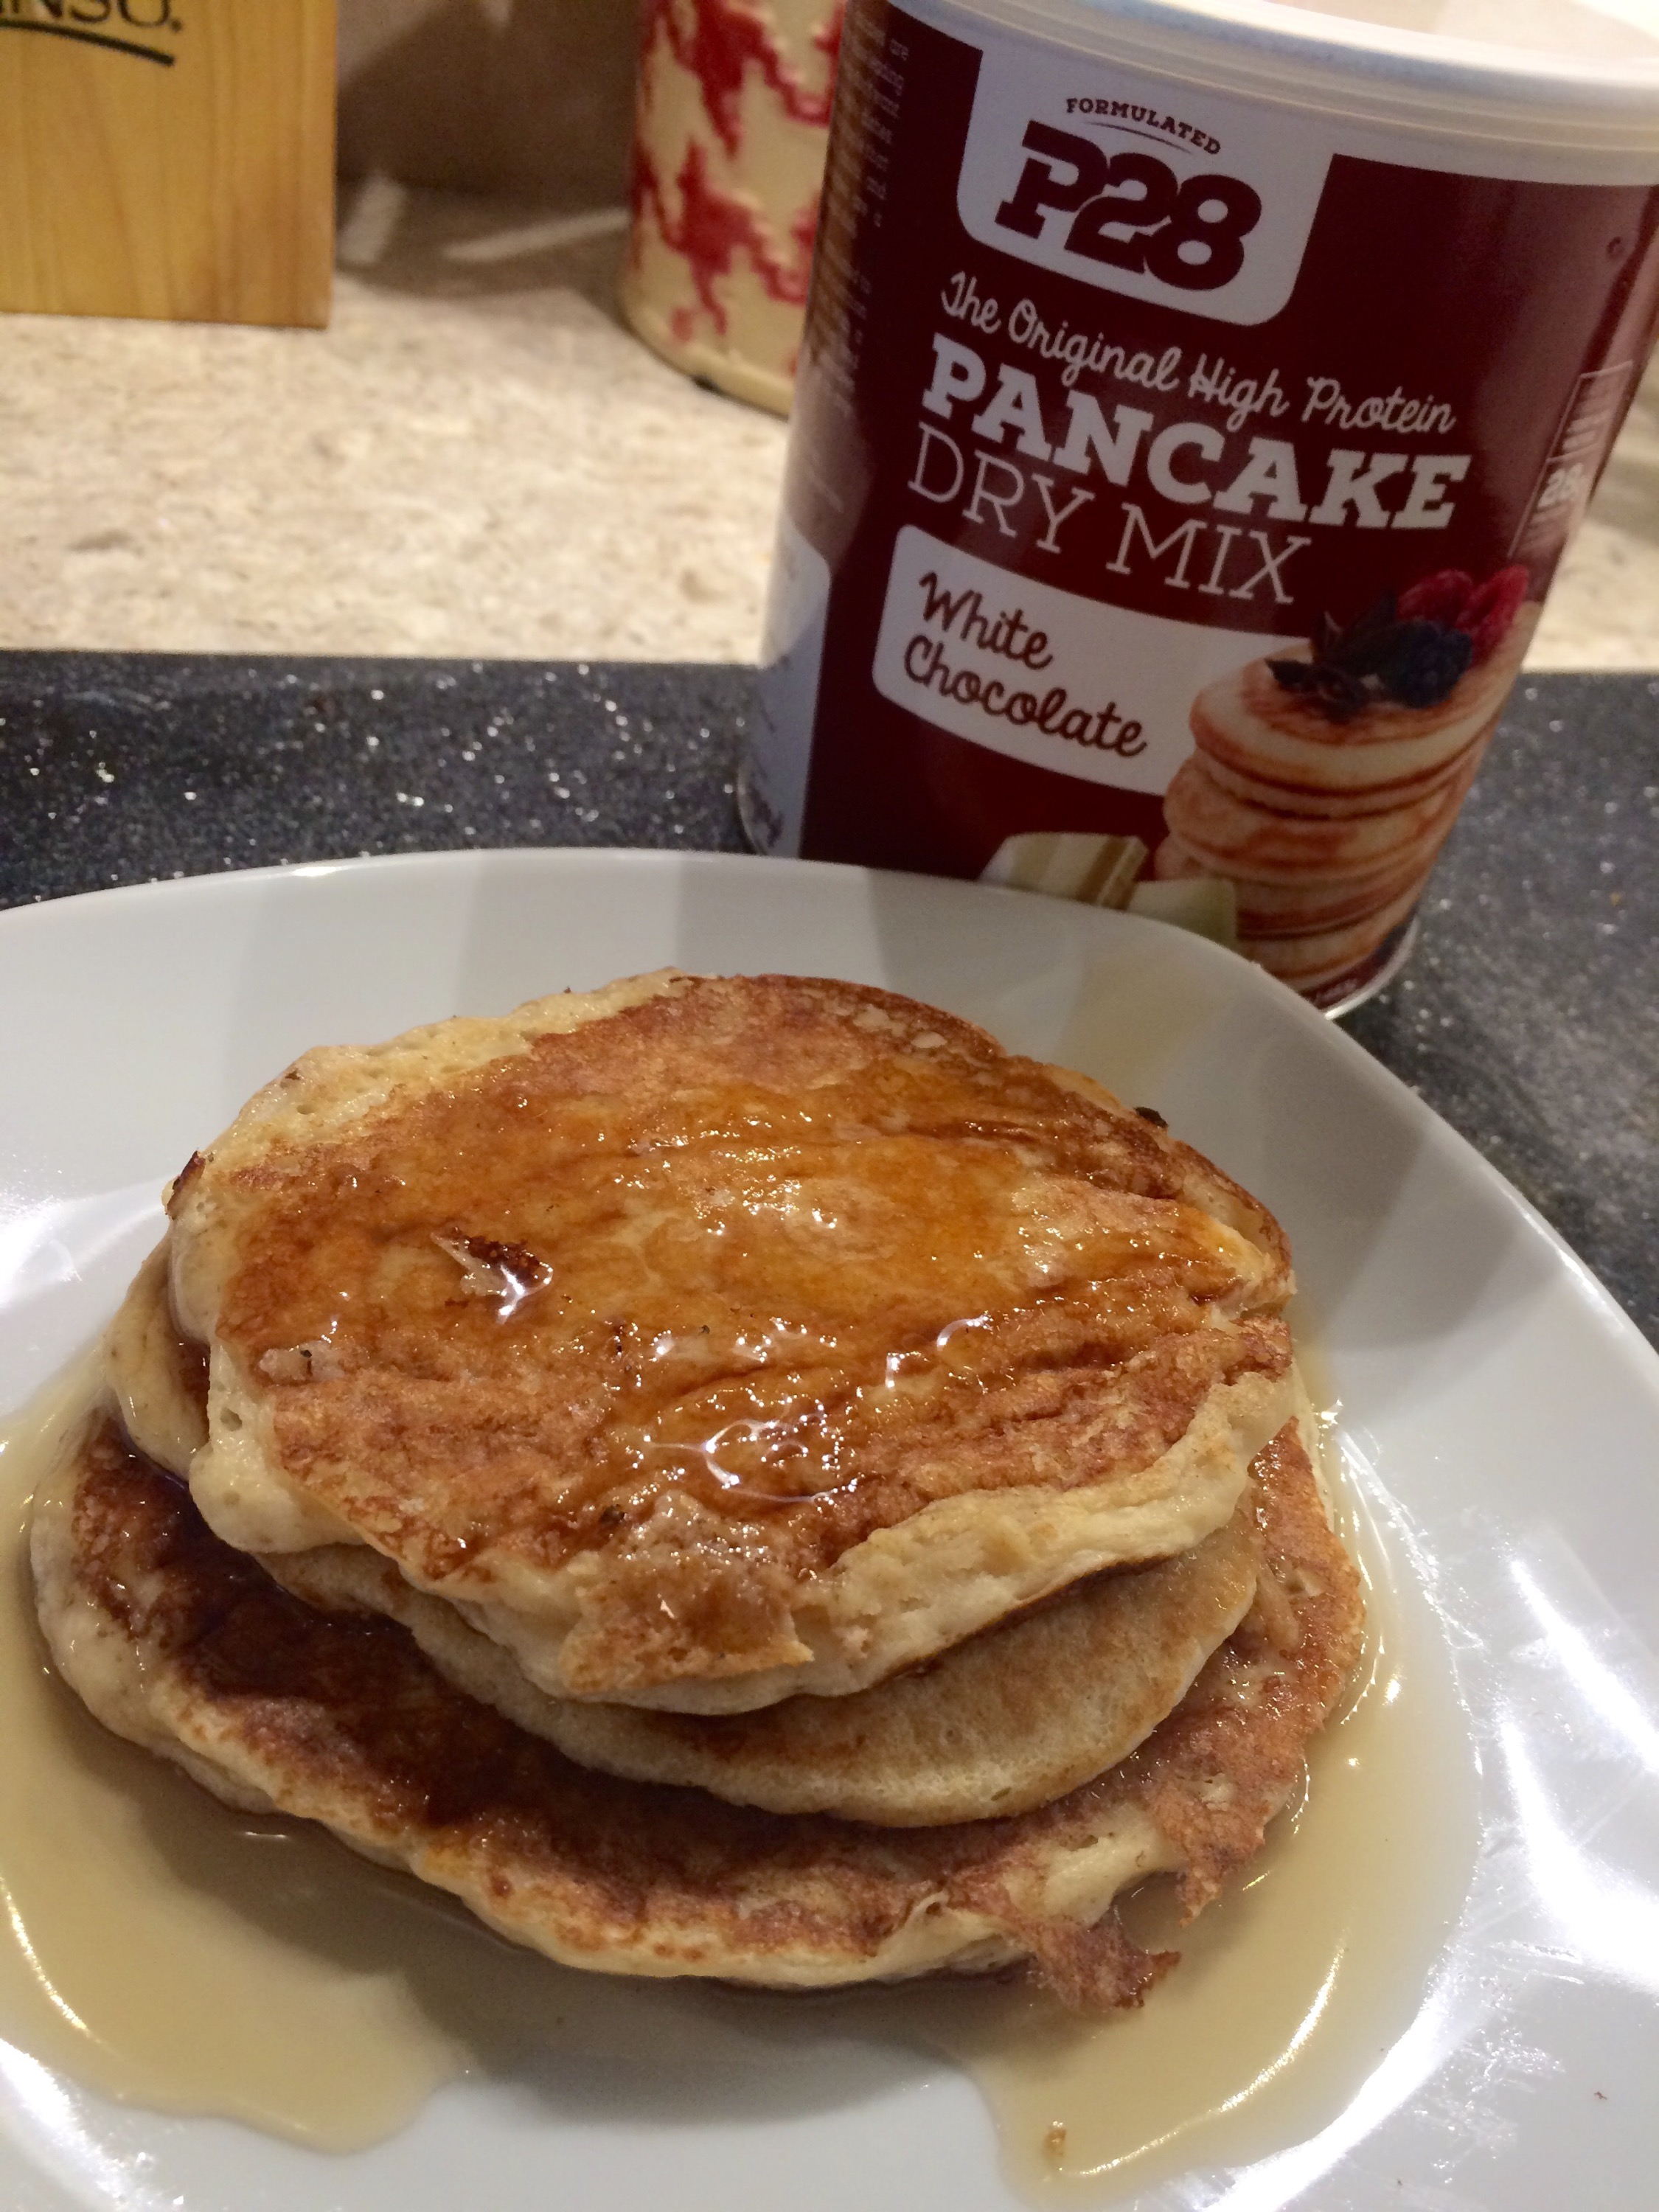 Protein pancakes using p28 foods white chocolate mix img0117 0g ccuart Gallery